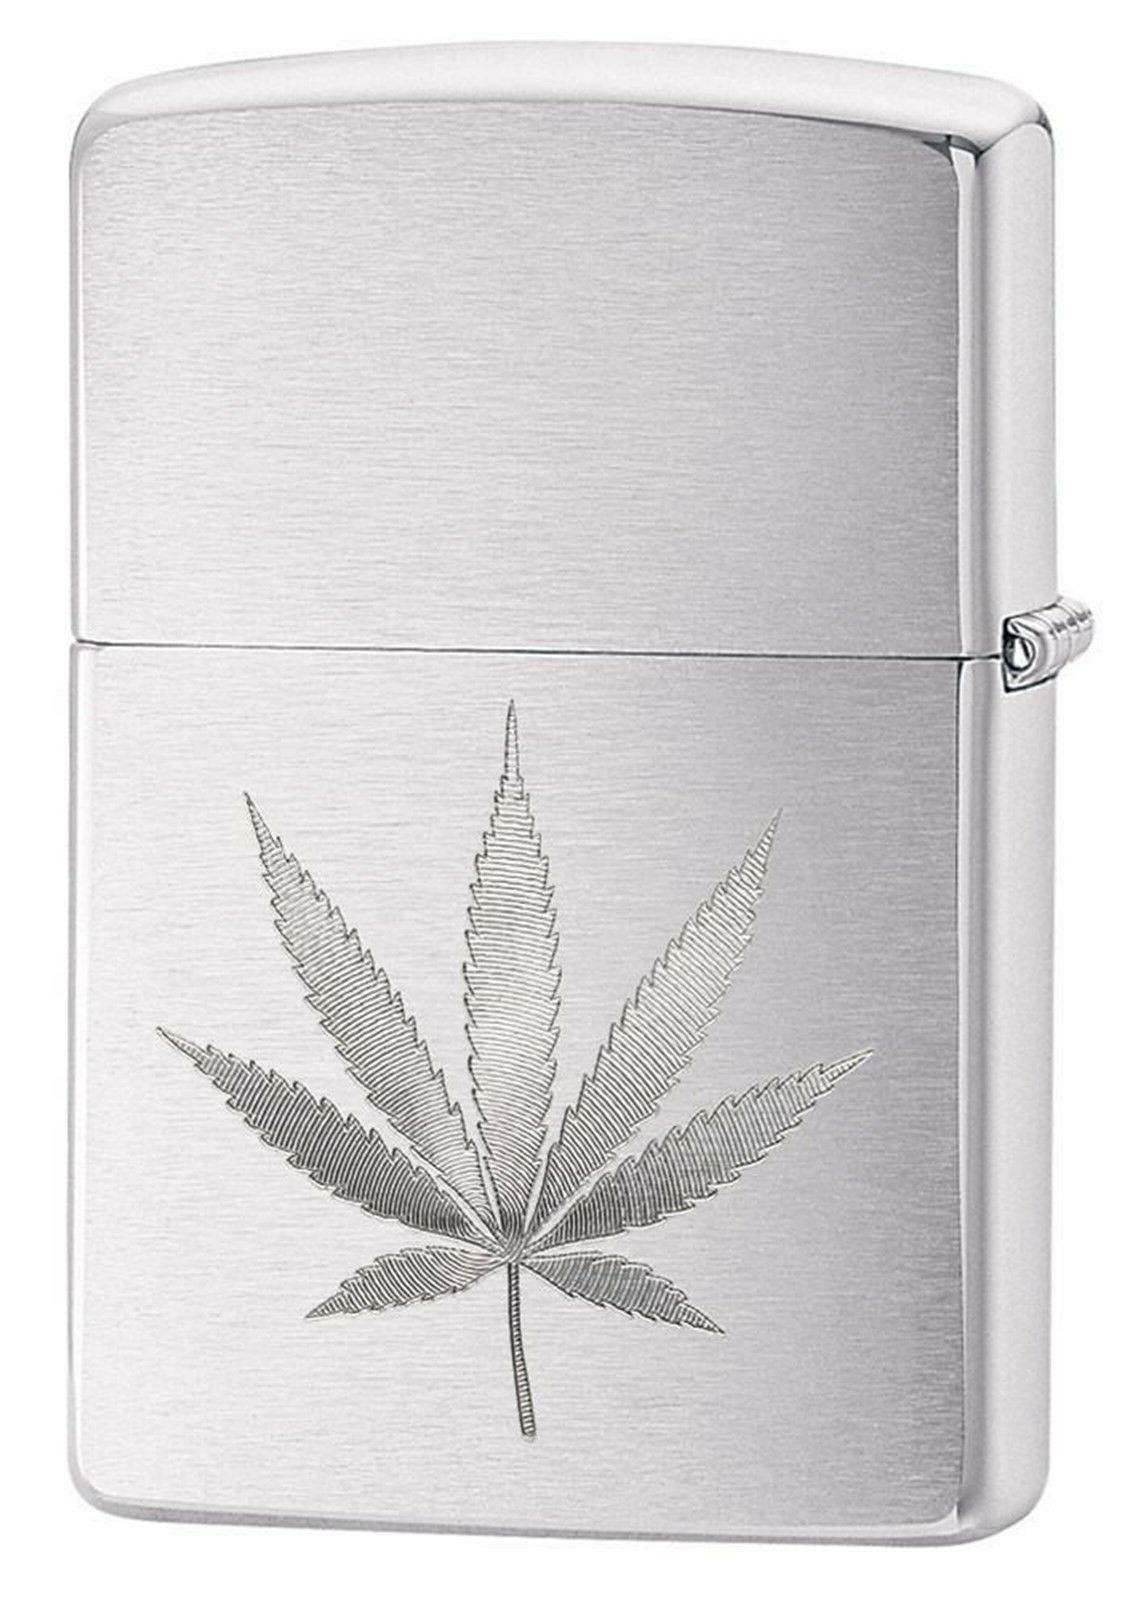 Zippo Lighter: Engraved Weed Leaf - Brushed Chrome 29587